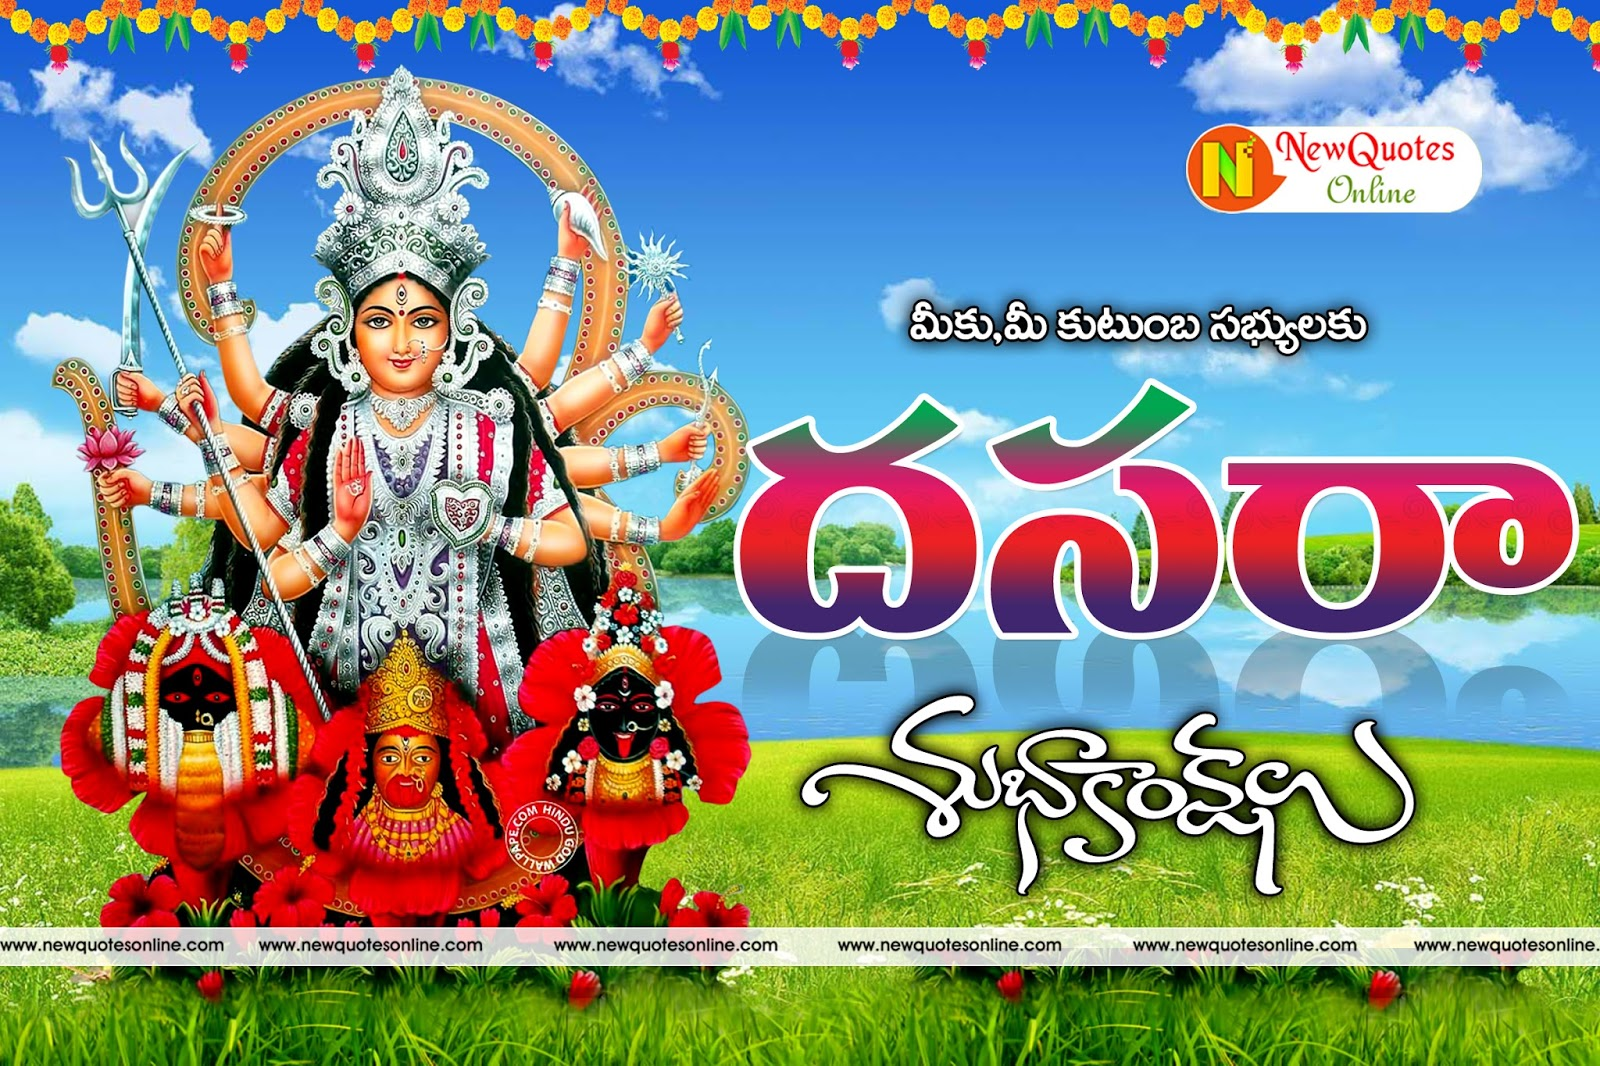 Happy dussehra quotes greetings in telugu dasara wishes in telugu happy dasara telugu quotes and wishes online free download m4hsunfo